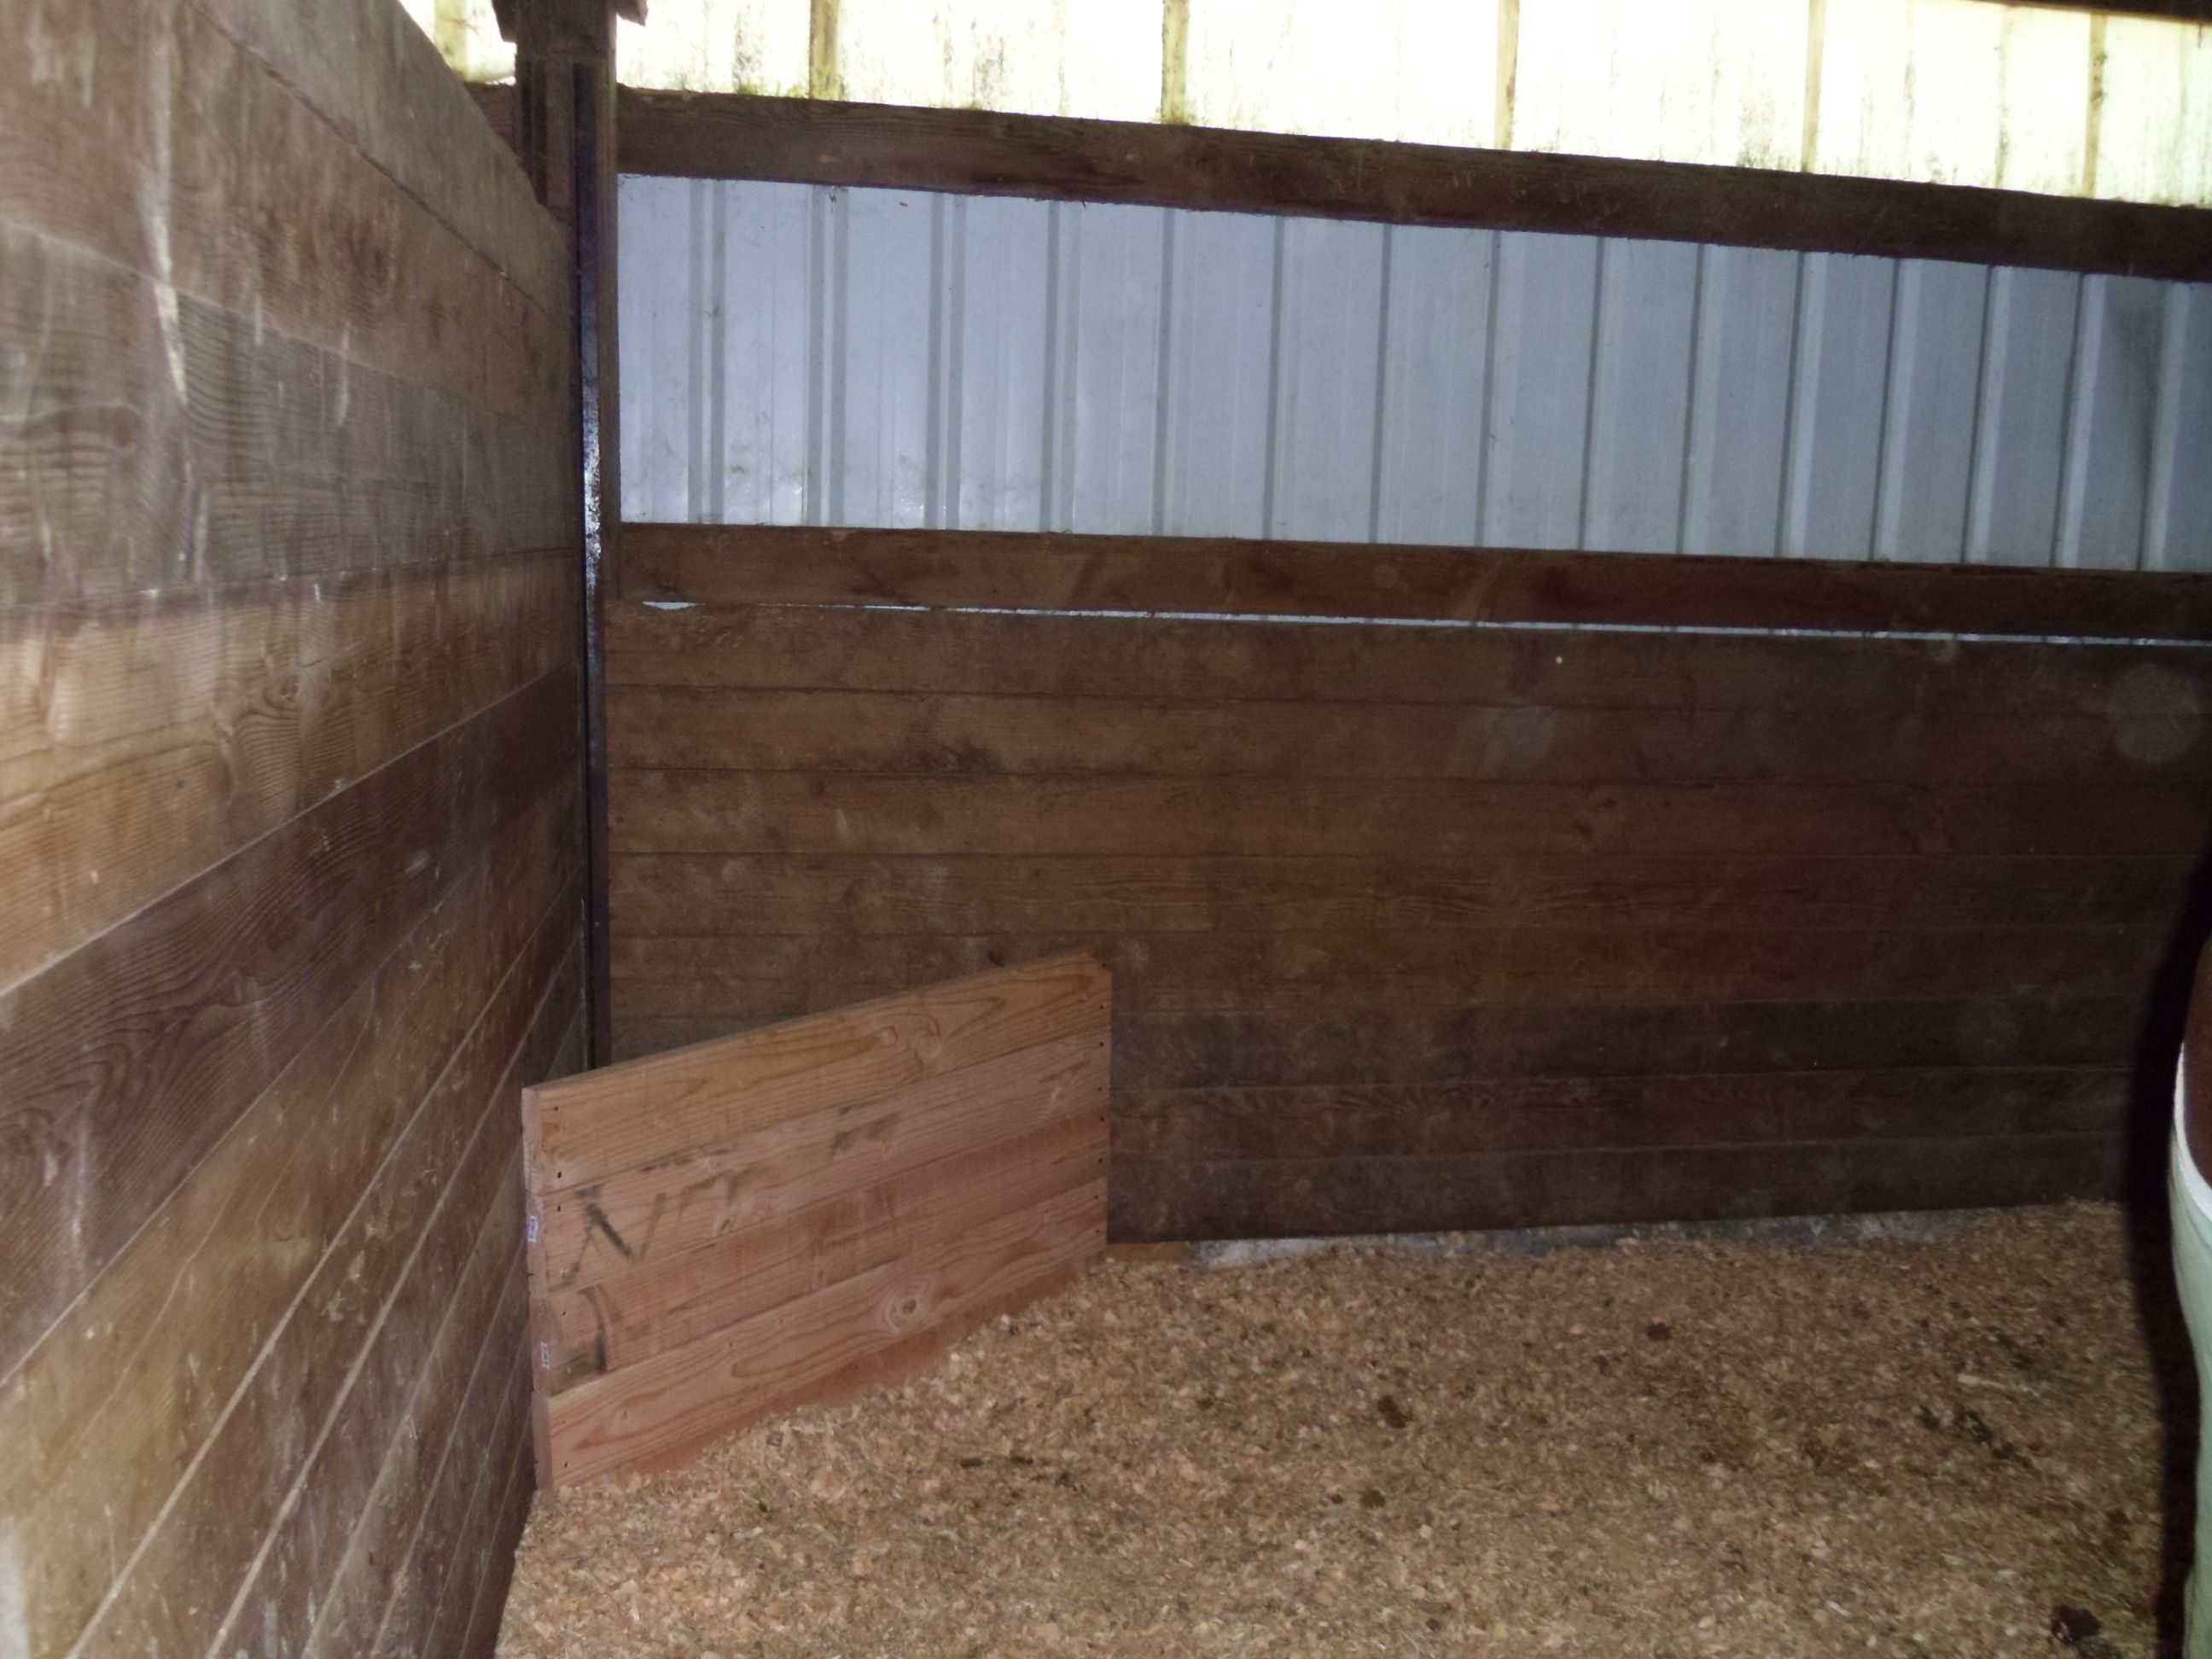 flat grazer stall feeder feeders panel horse pro wall zoom product a in at